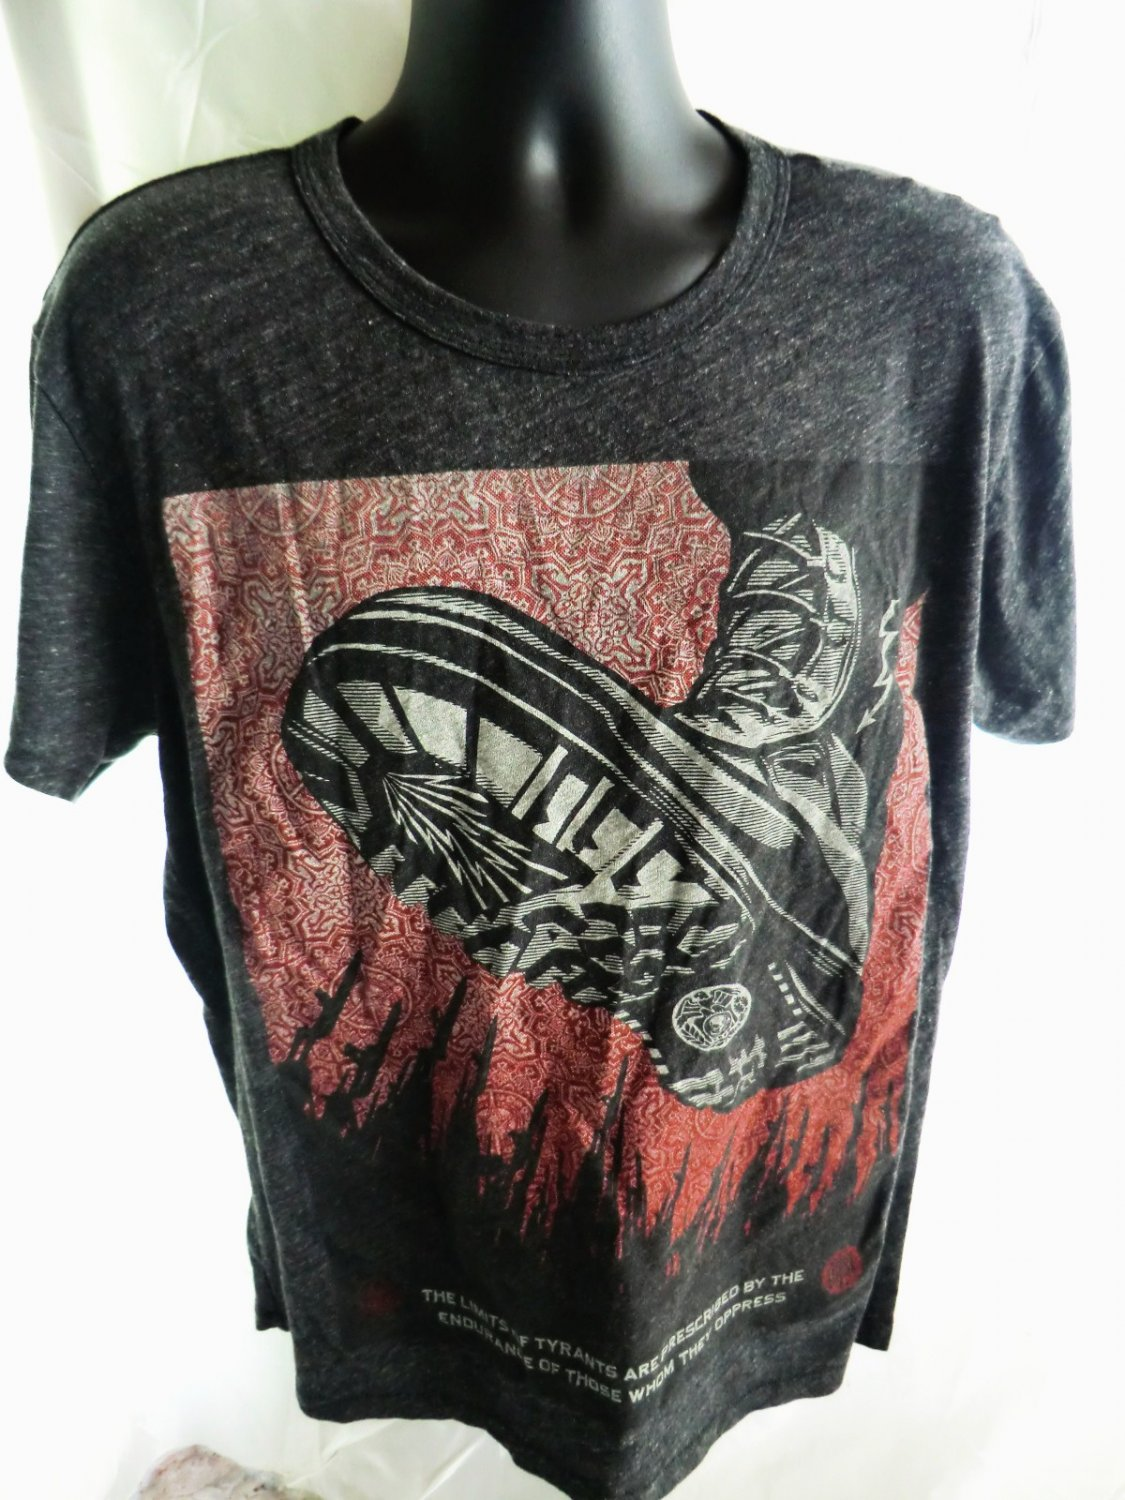 SOLD! Protesting? Wear this T-Shirt Size Large or XL Tyrants Oppress by Fairey